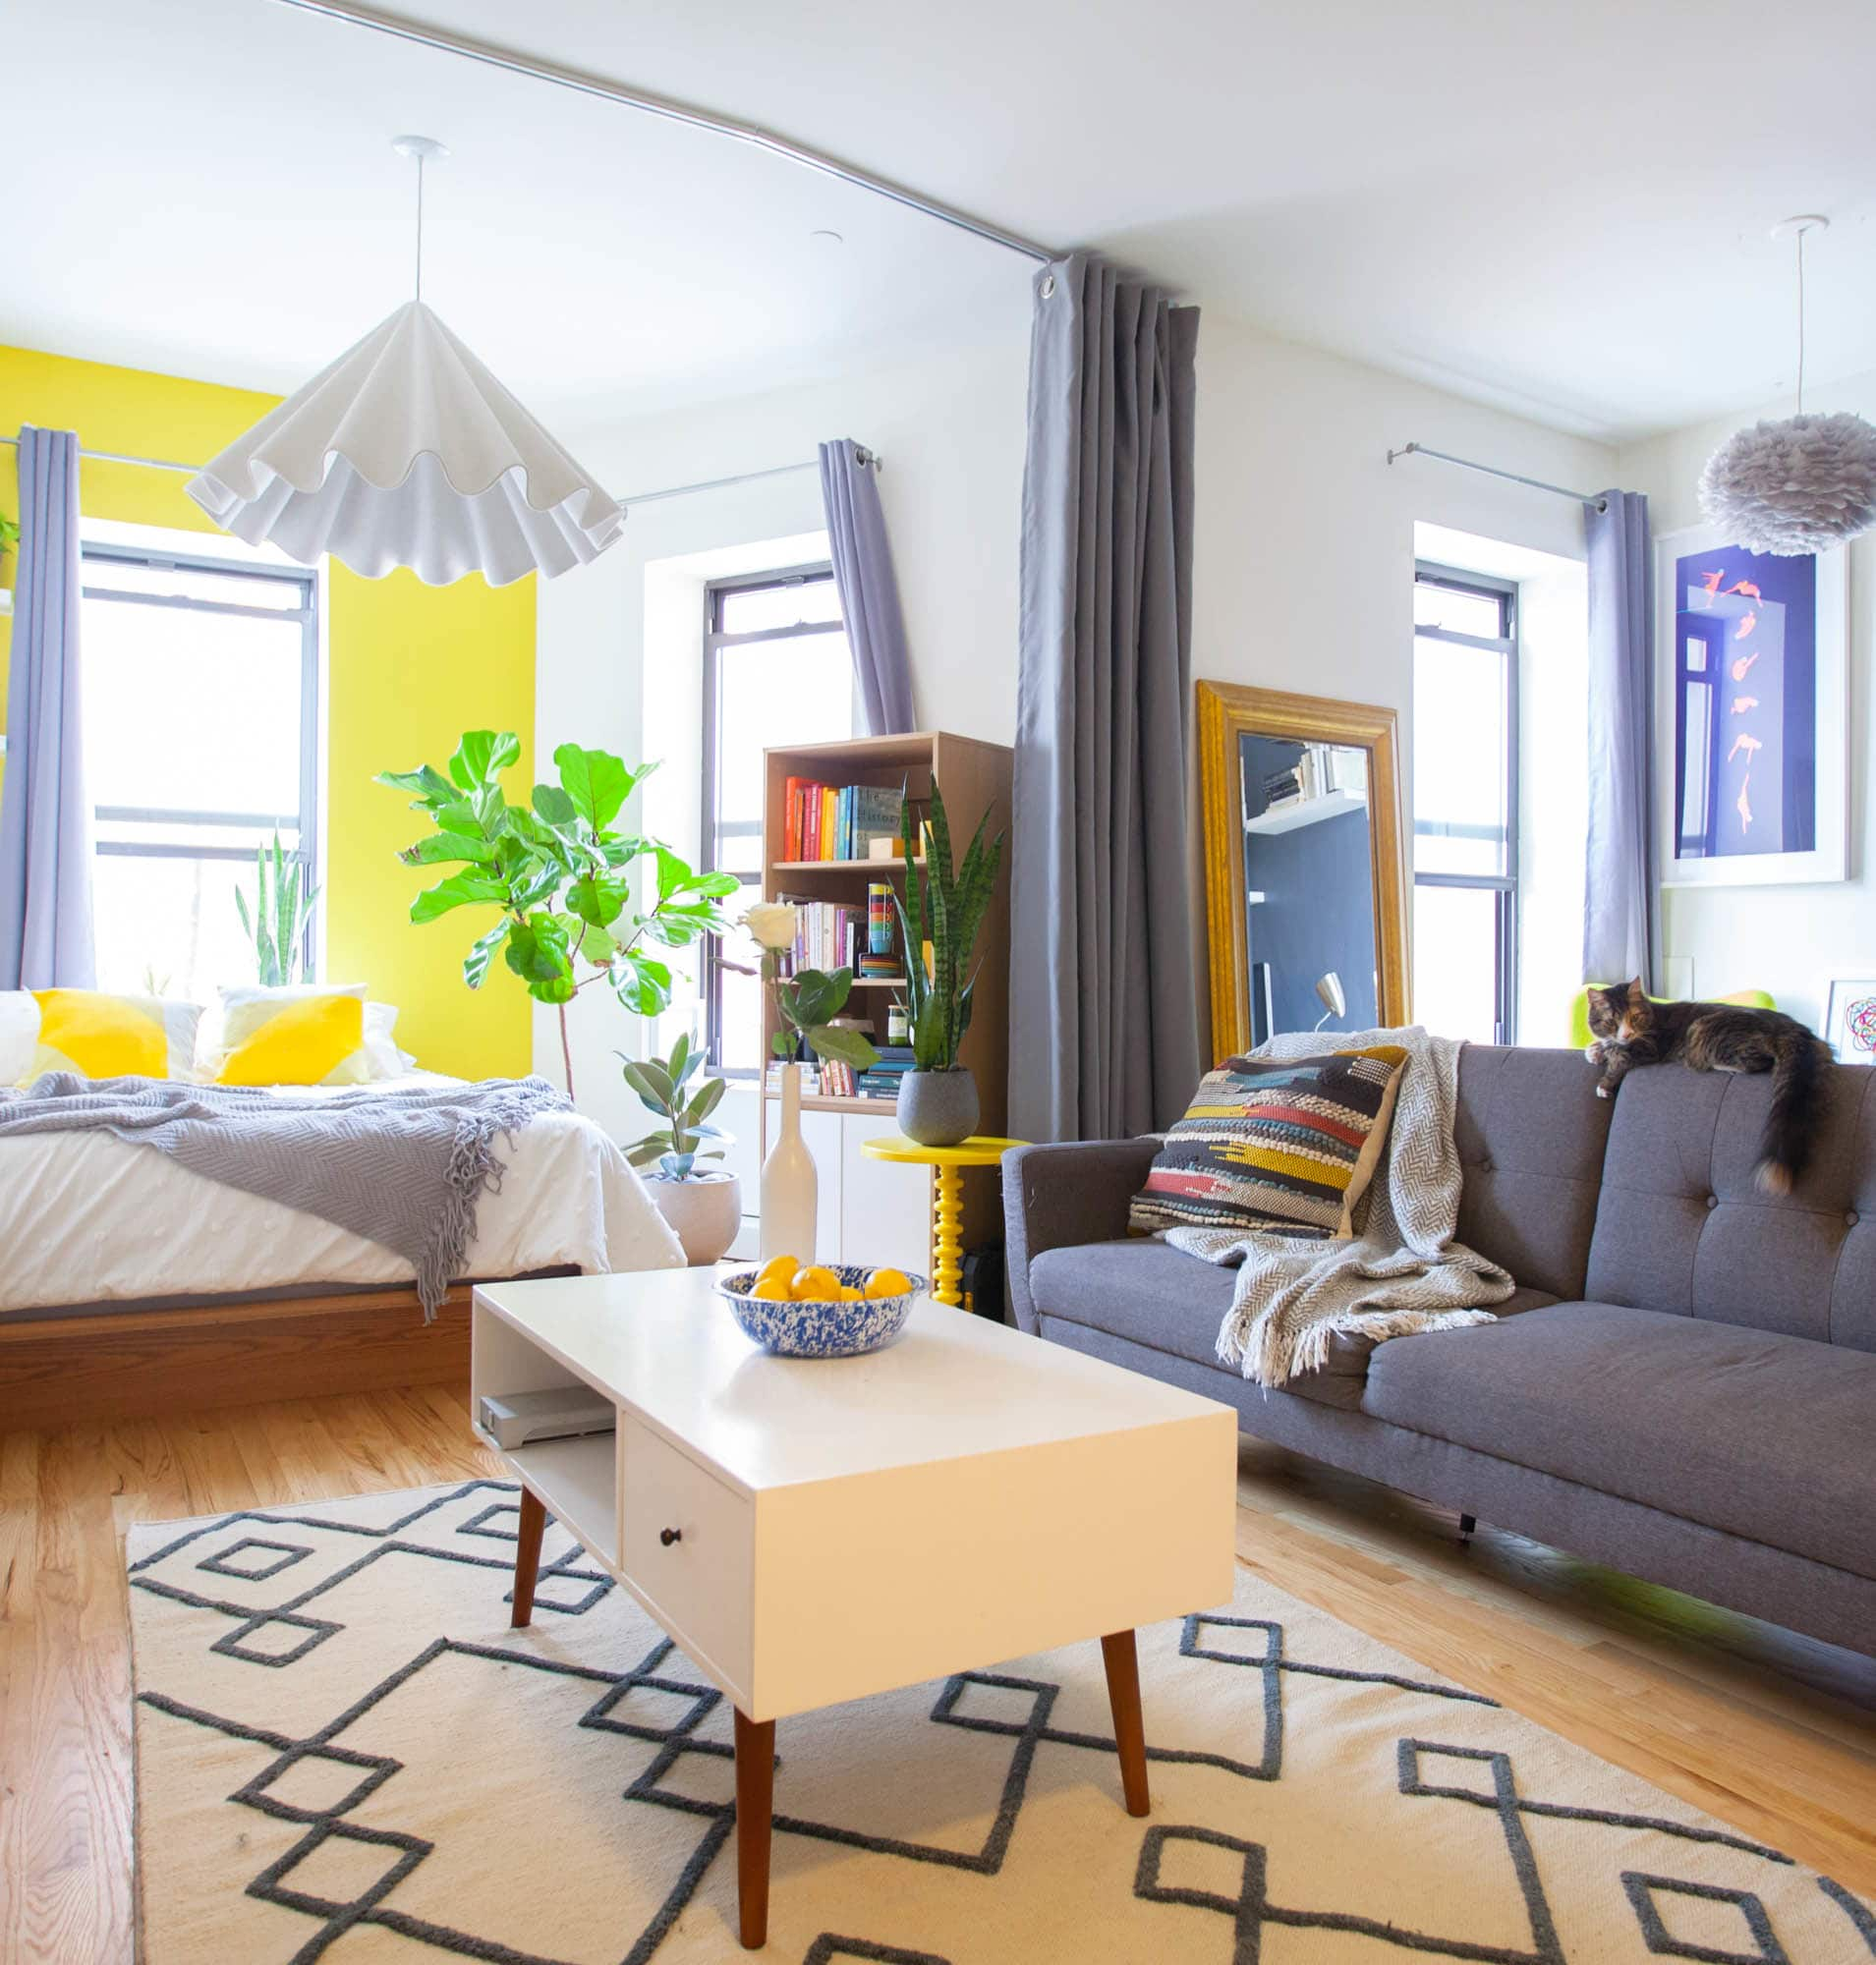 Studio Apartments In The Bronx: House Tour: A Bold, Colorful Bronx Studio